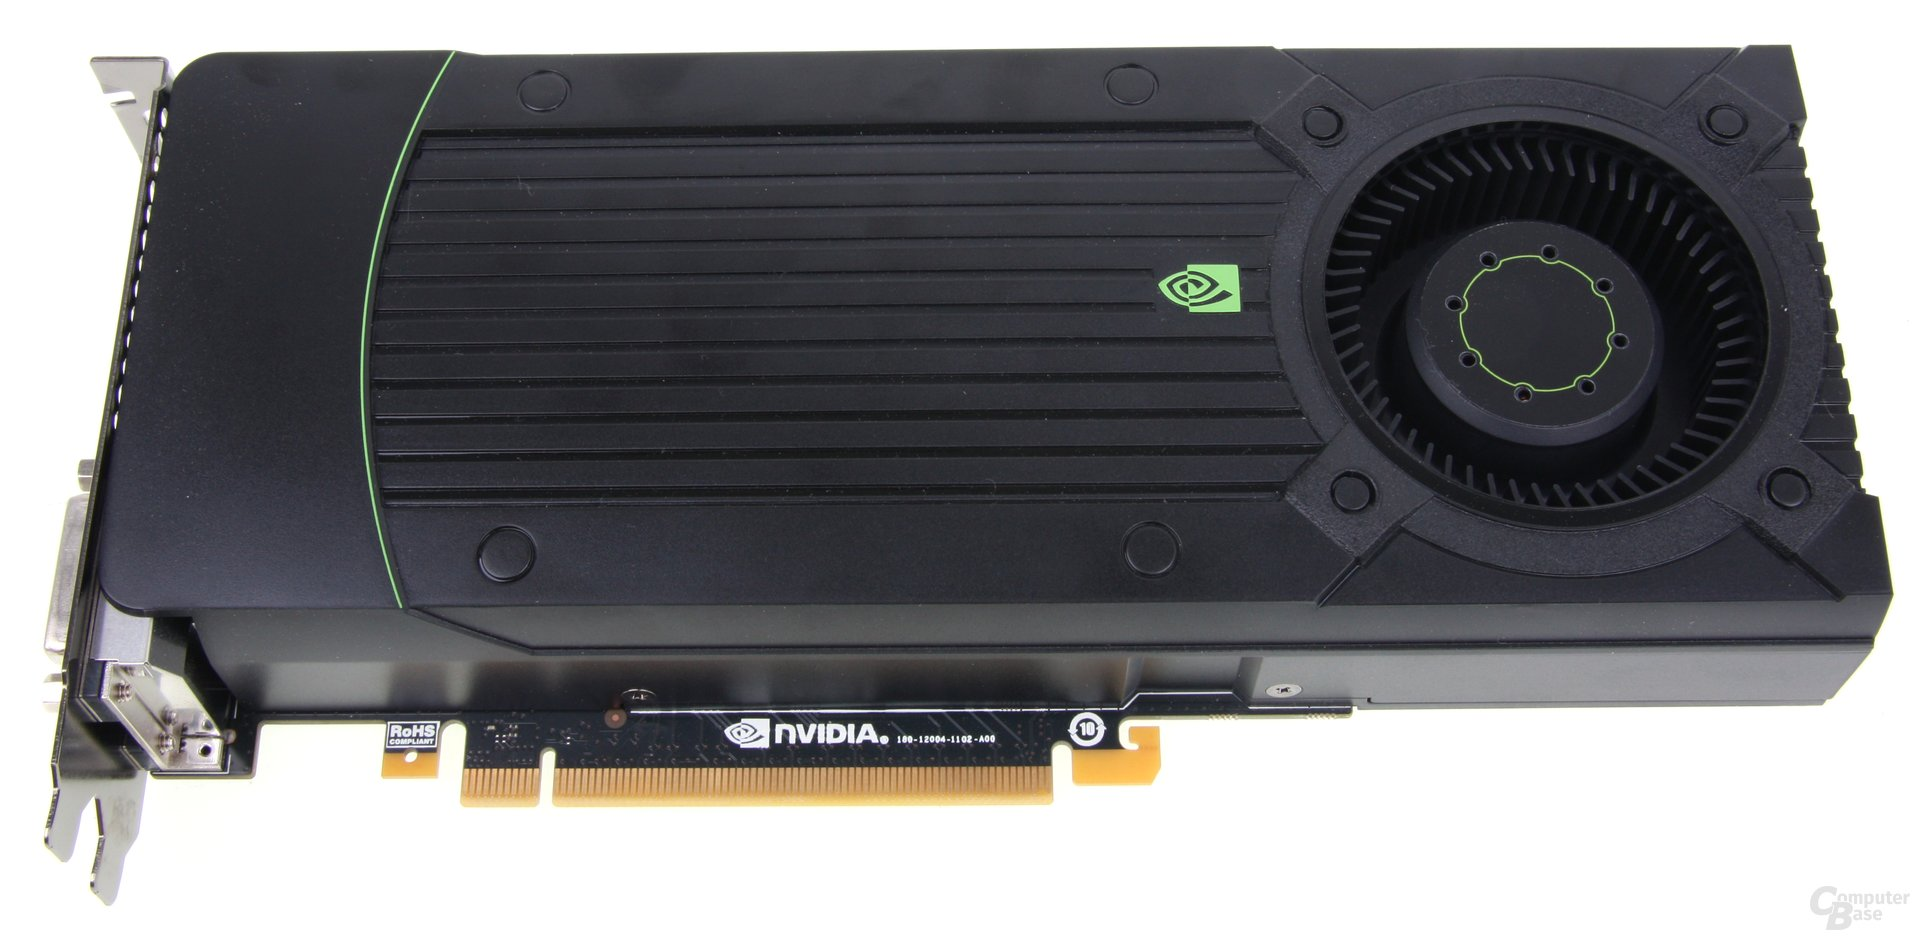 Nvidia GeForce GTX 670